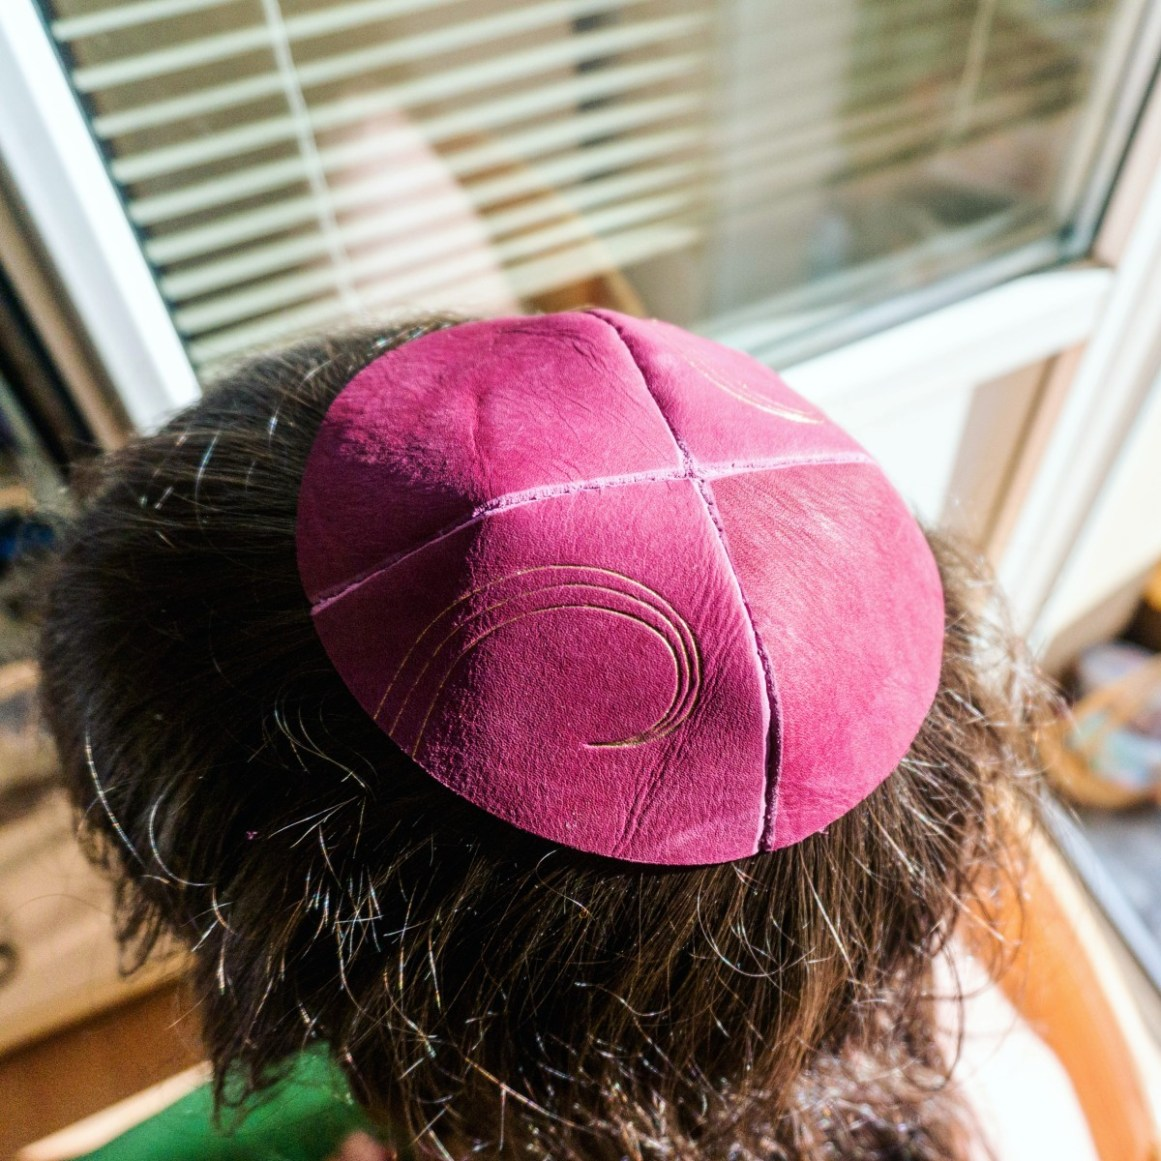 2016.08.19 - 13 - Making Leather Kippot - A Side Job for a Bookbininder